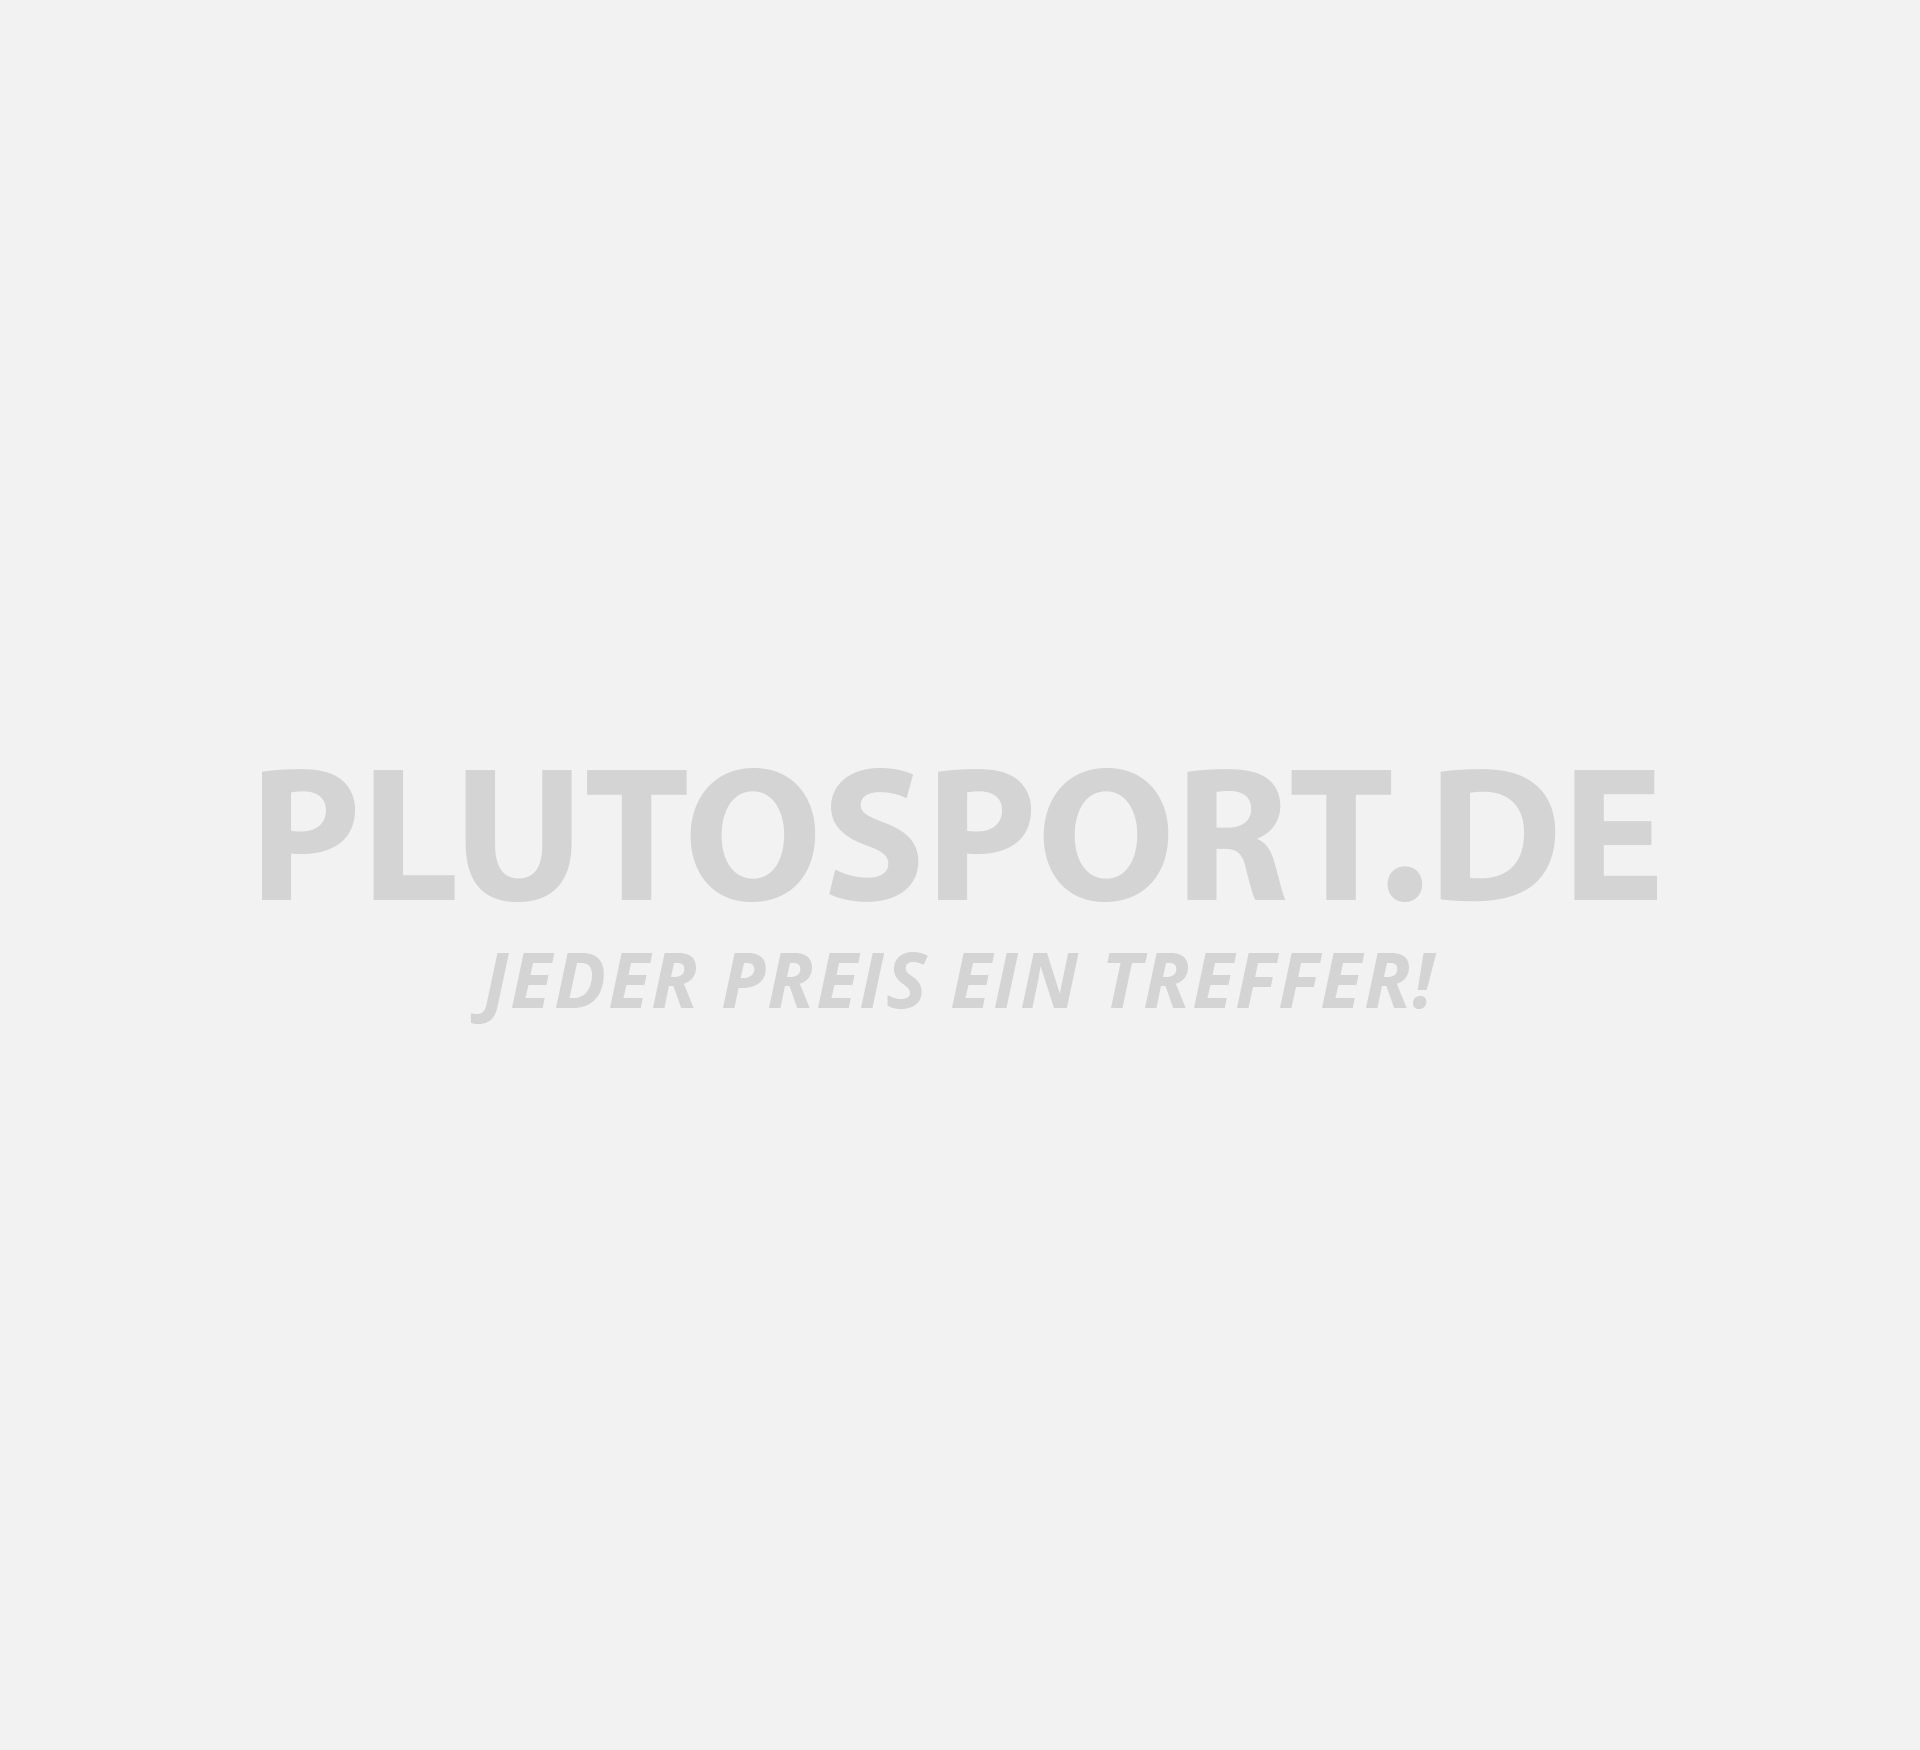 Jack & Jones Originals AM 226 Jeans Kinder